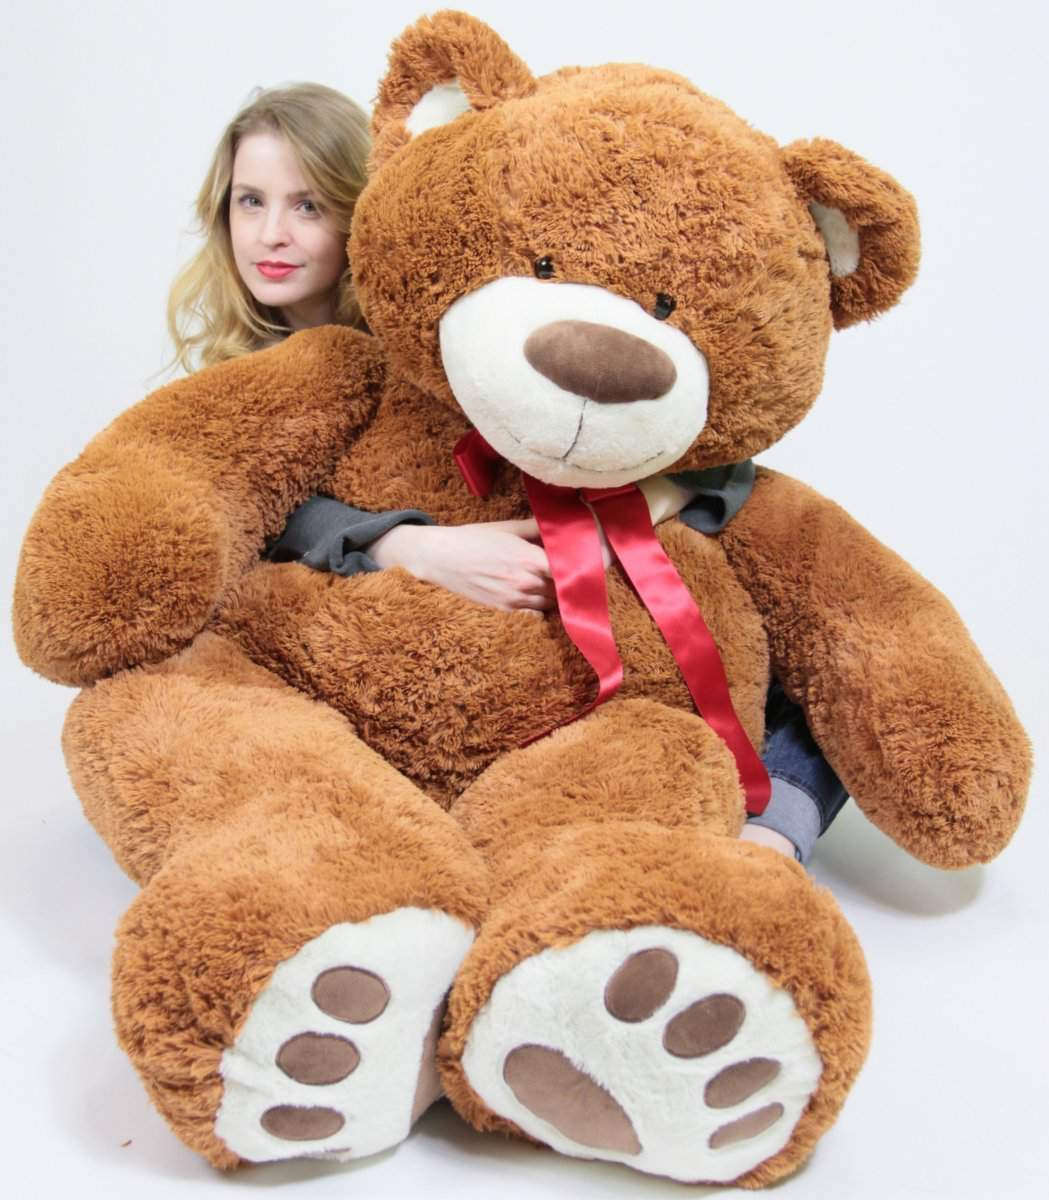 184557f2105 5 Foot Very Big Smiling Teddy Bear 60 Inch Soft Brown Giant Stuffed Animal  with Bigfoot ...